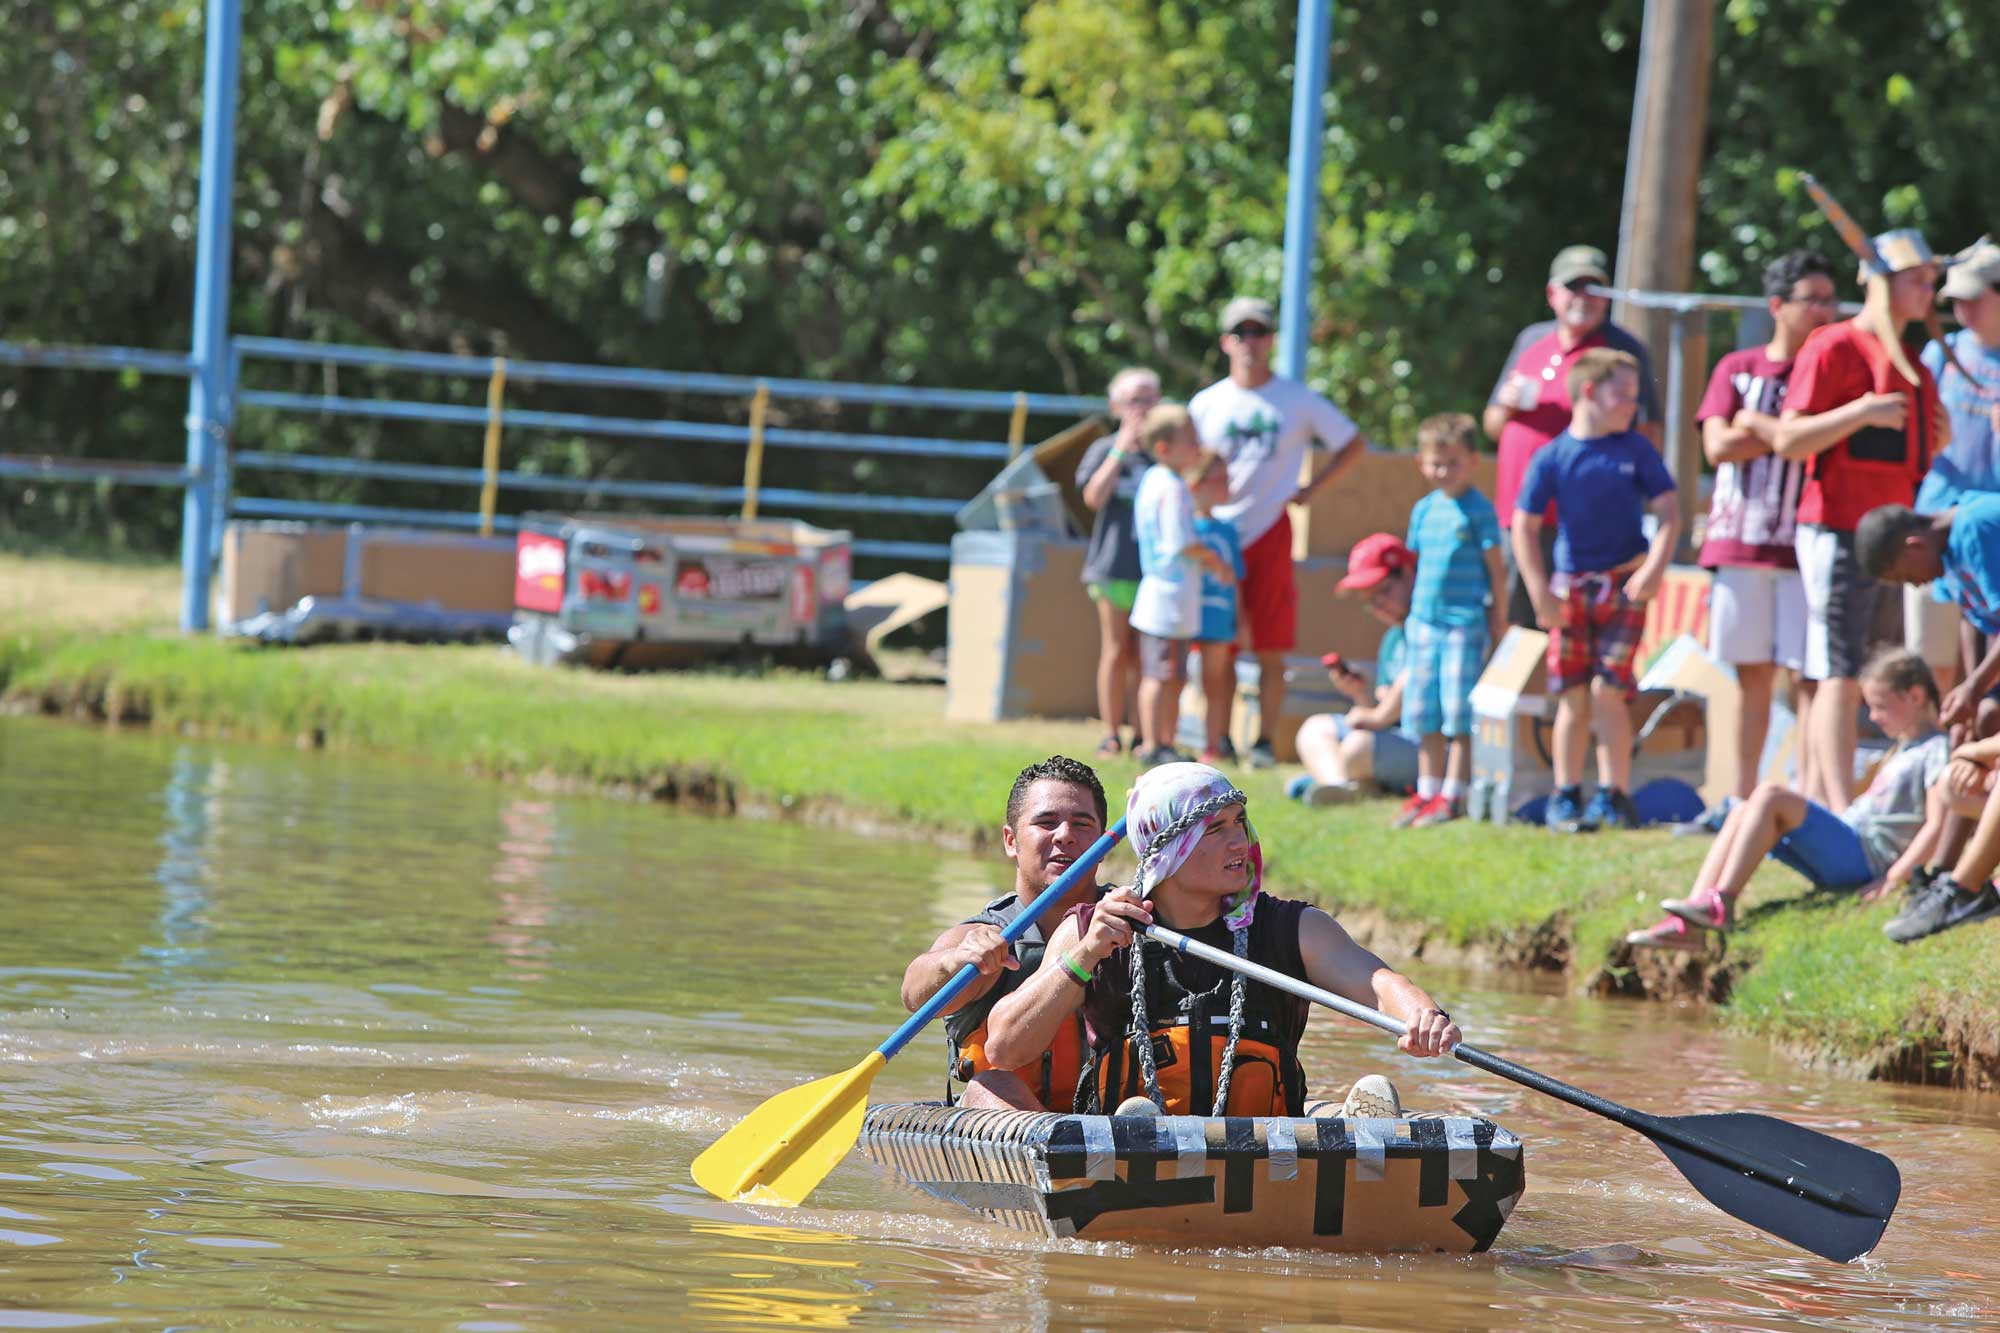 Residents have fun participating in the Boys Ranch cardboard boat races